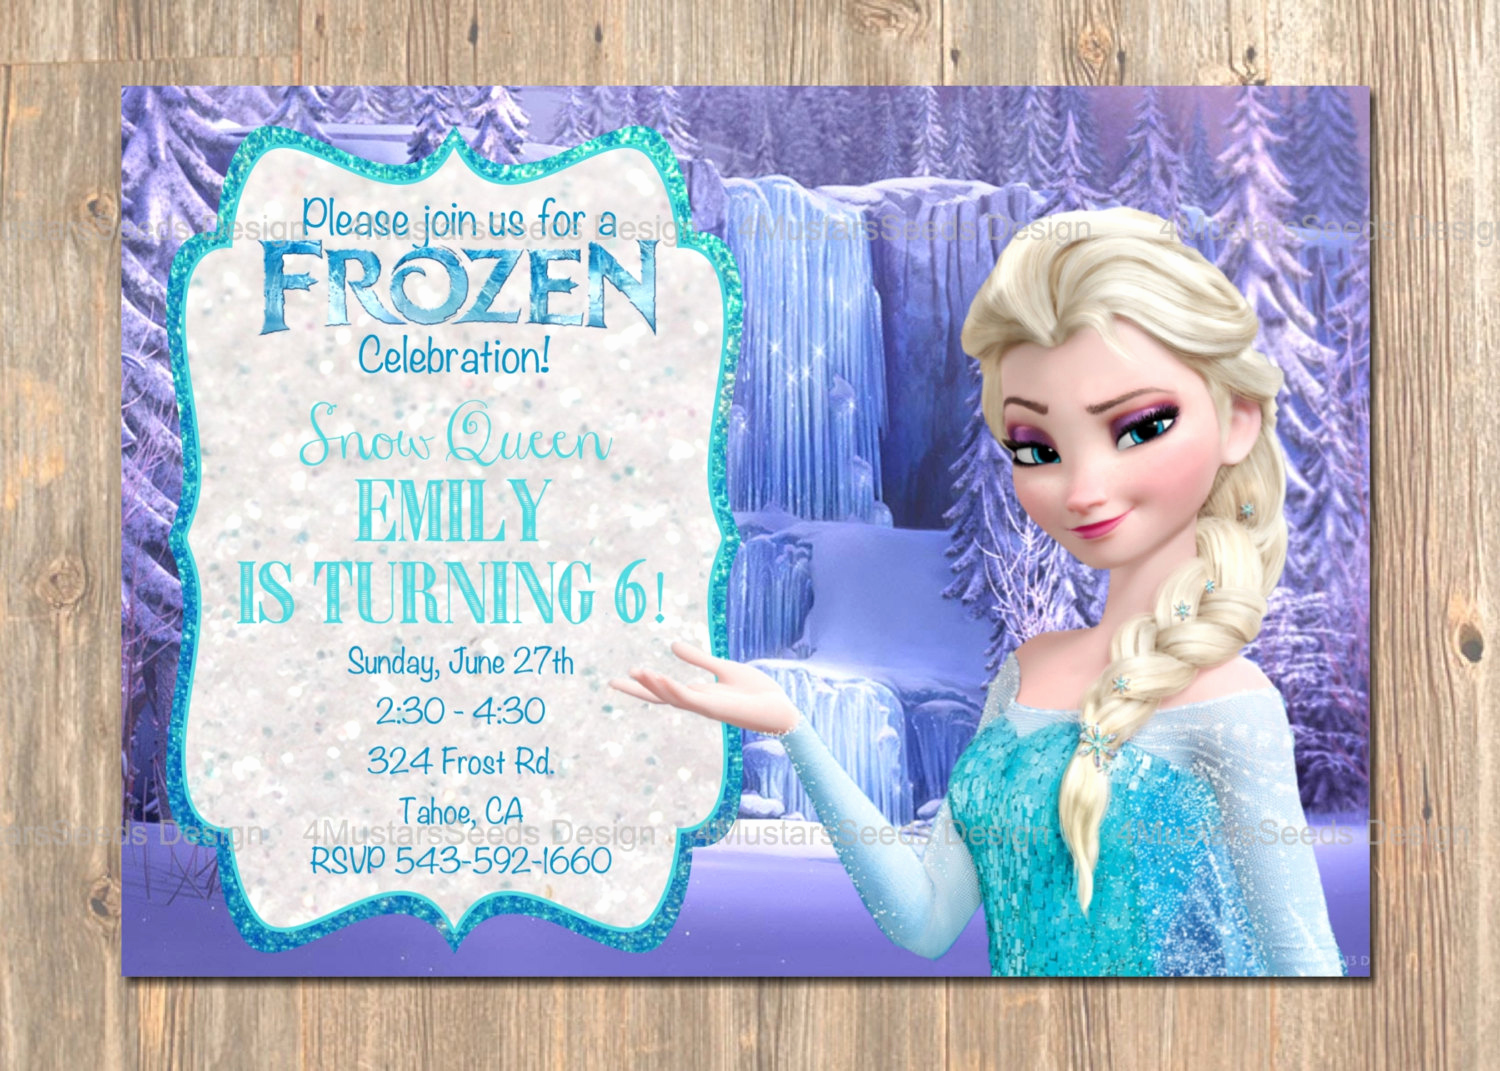 Frozen Bday Party Invitations Luxury Frozen Birthday Invitation Elsa Frozen Invitation Printable